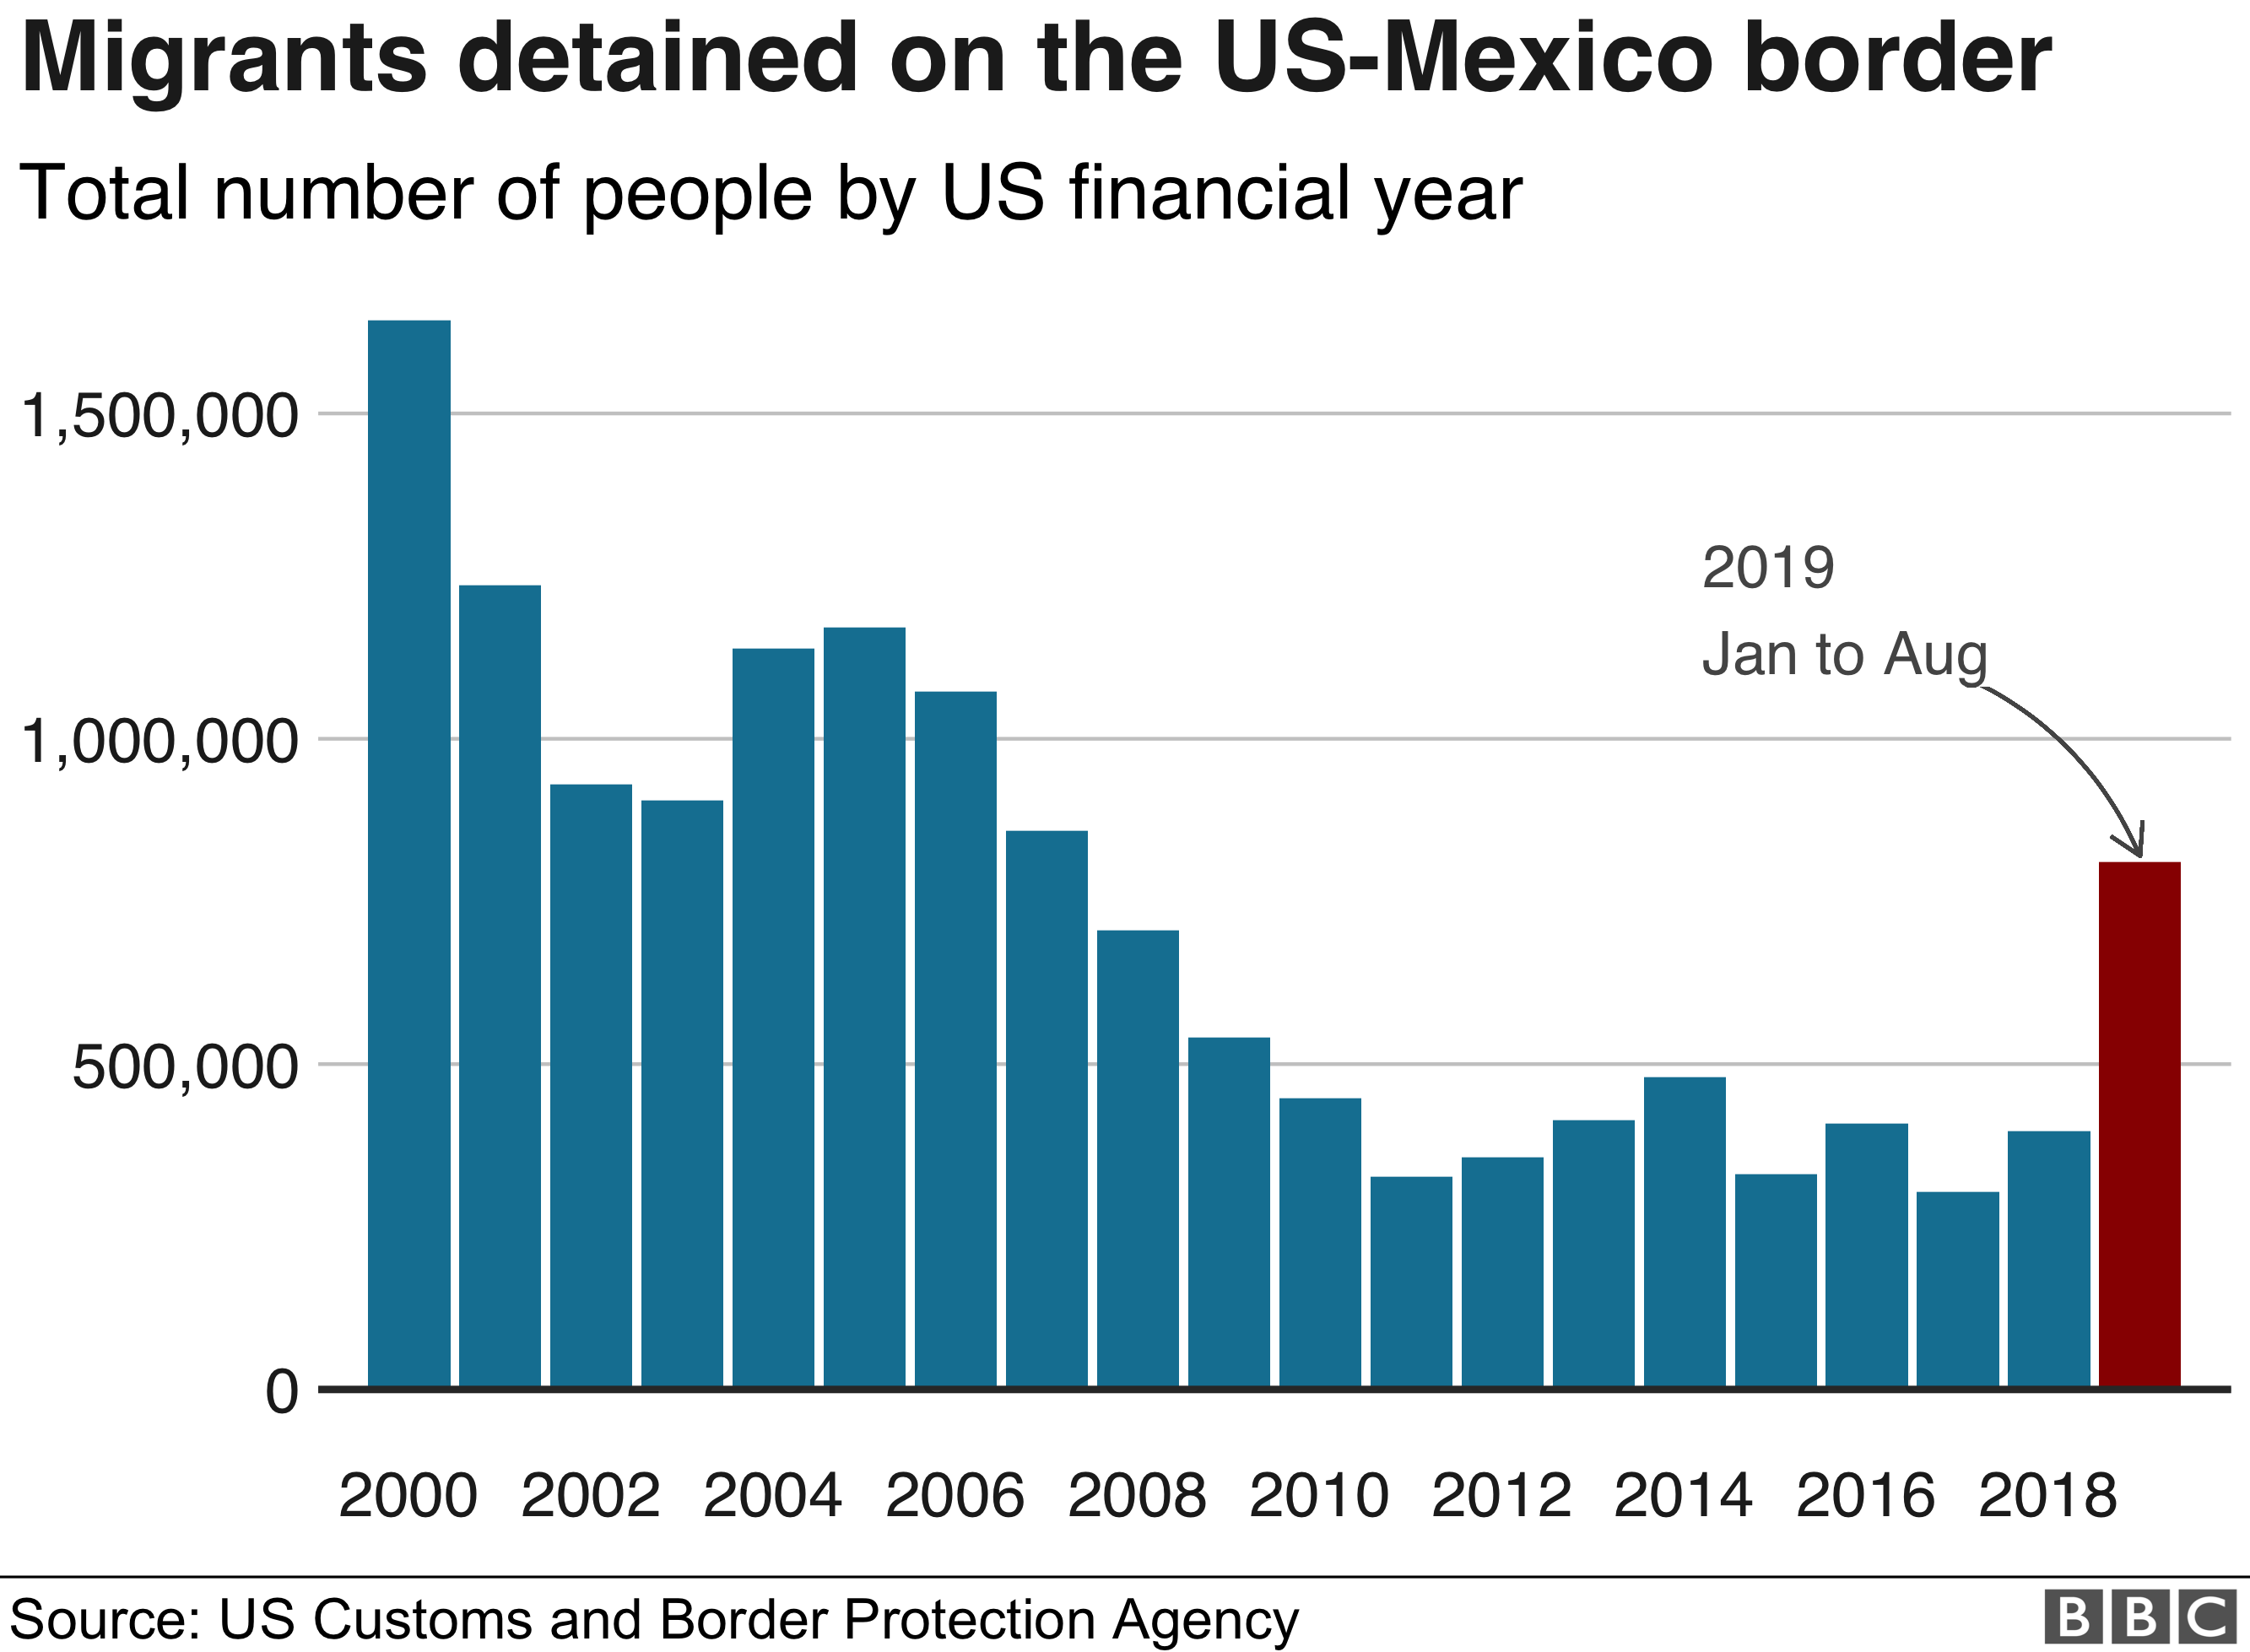 Migrants detained on the US-Mexico border from 2000-2019